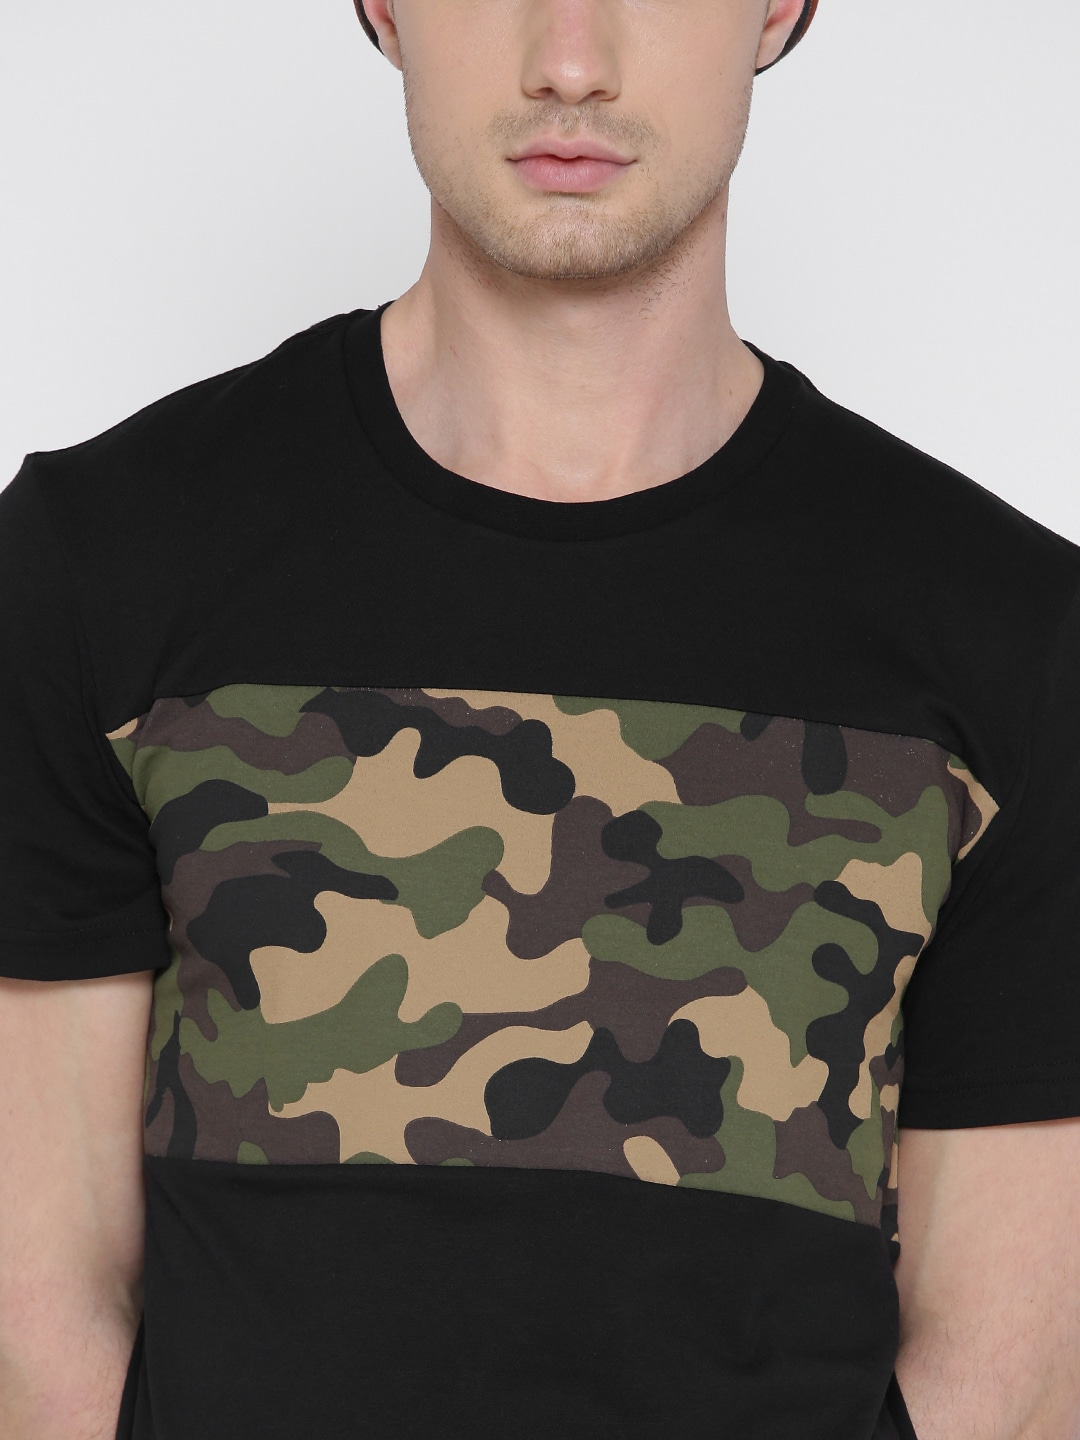 cheap adidas camouflage t shirt. Black Bedroom Furniture Sets. Home Design Ideas